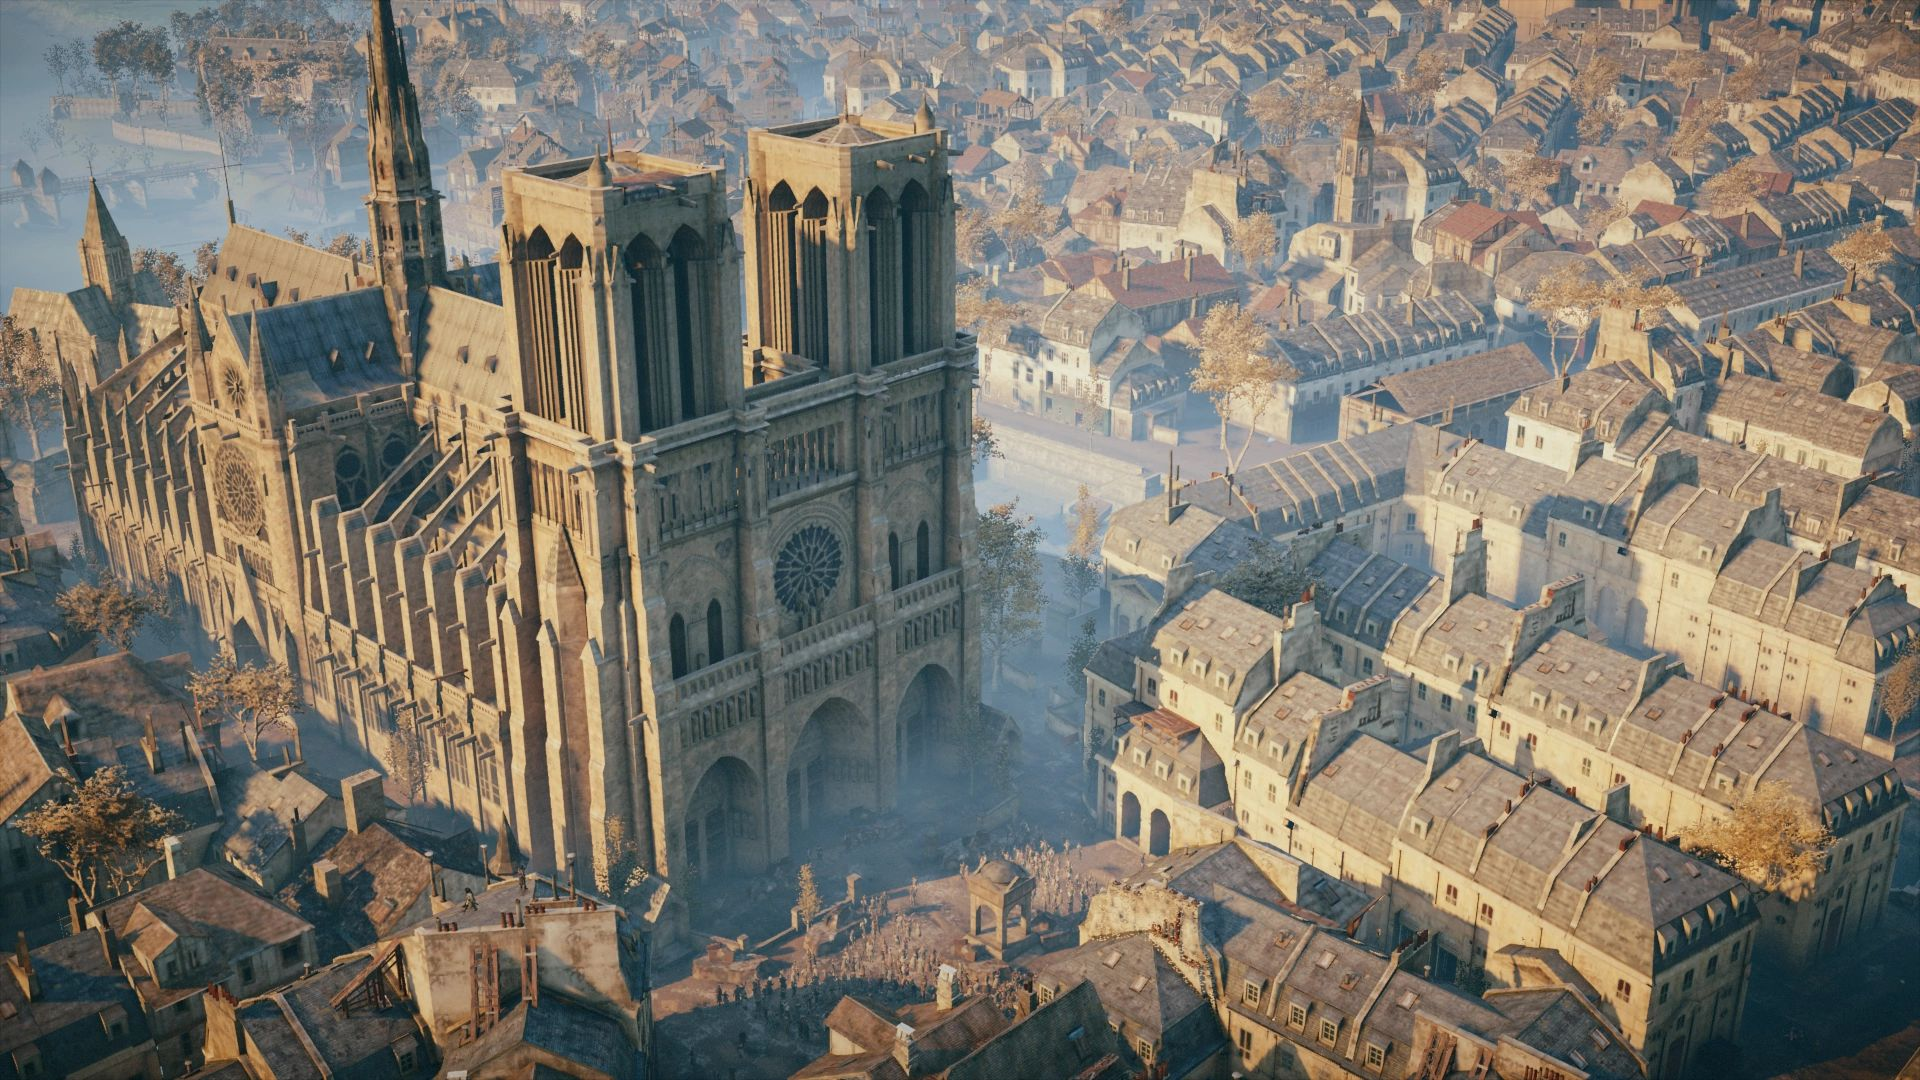 Assassin's Creed Unity could help rebuild Notre Dame